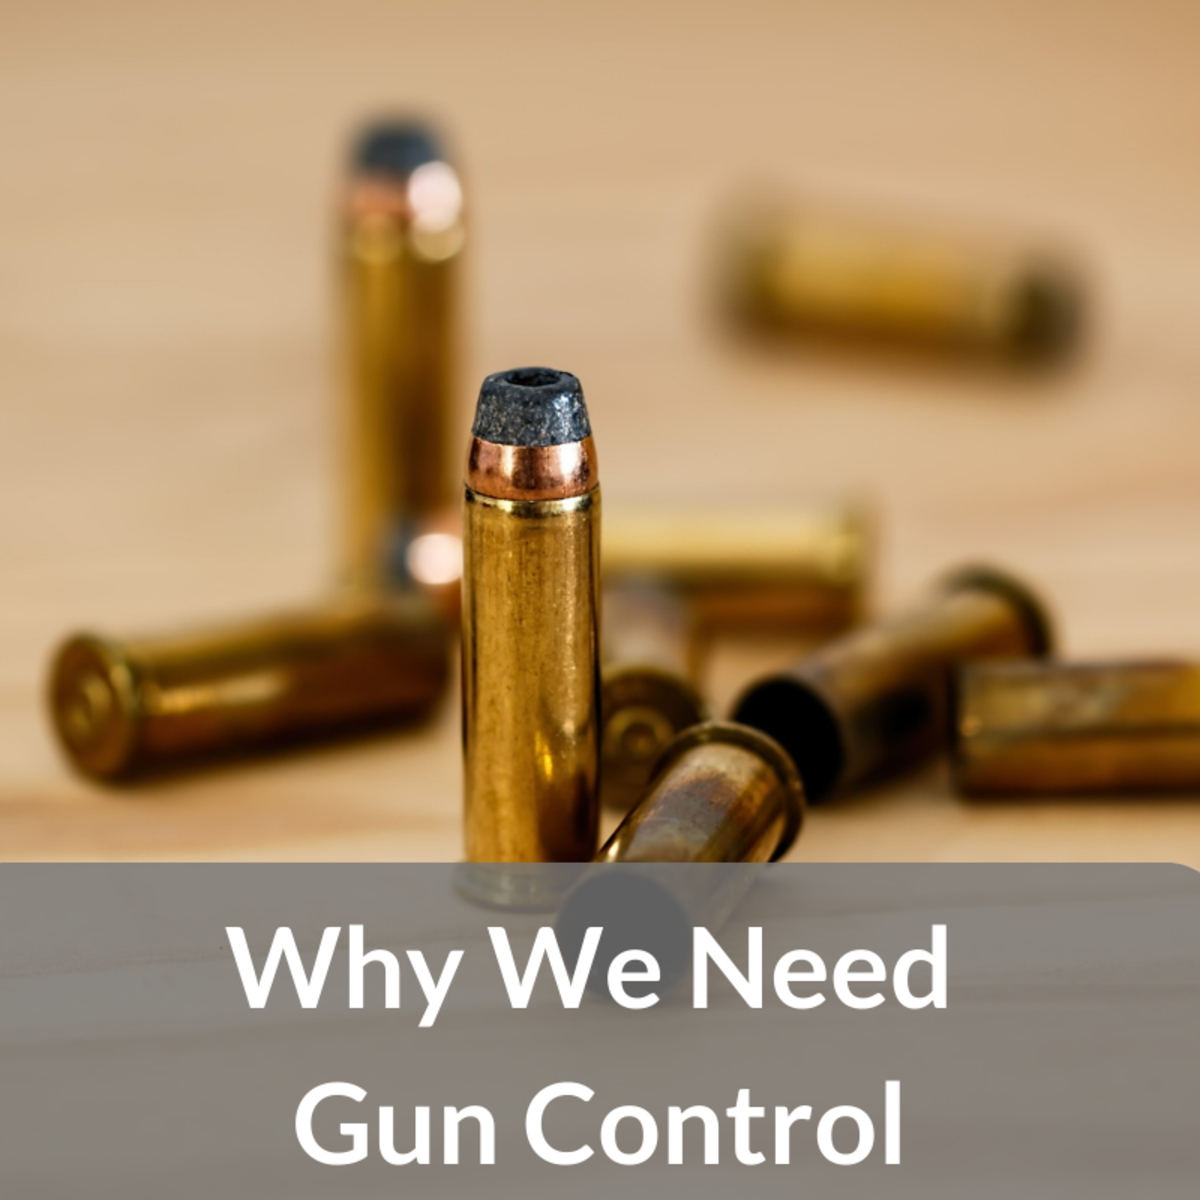 Why Gun Control Is the Answer